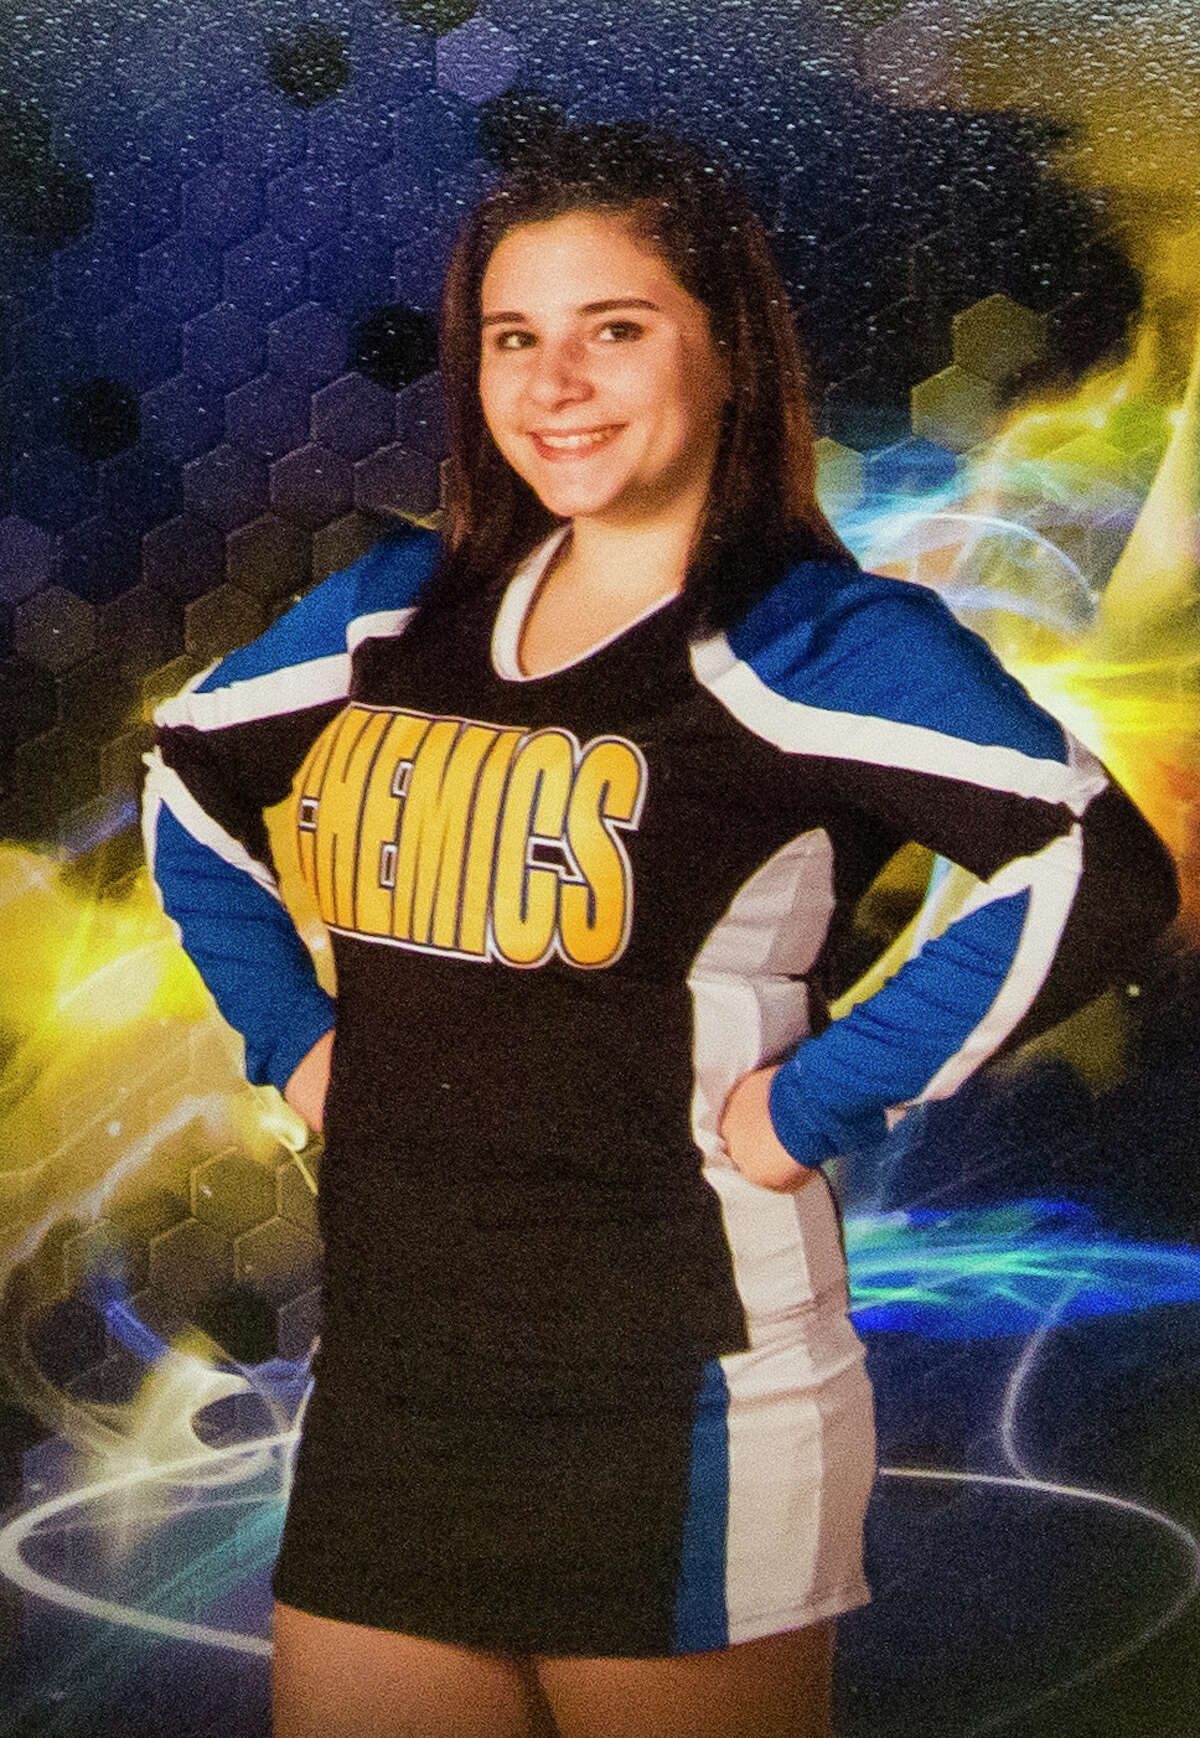 Amedy Dewey, 18, attended Midland High and is still recovering from injuries sustained in a shooting in January. During her time at Midland High, Dewey participated in competitive cheer. (Photo provided)